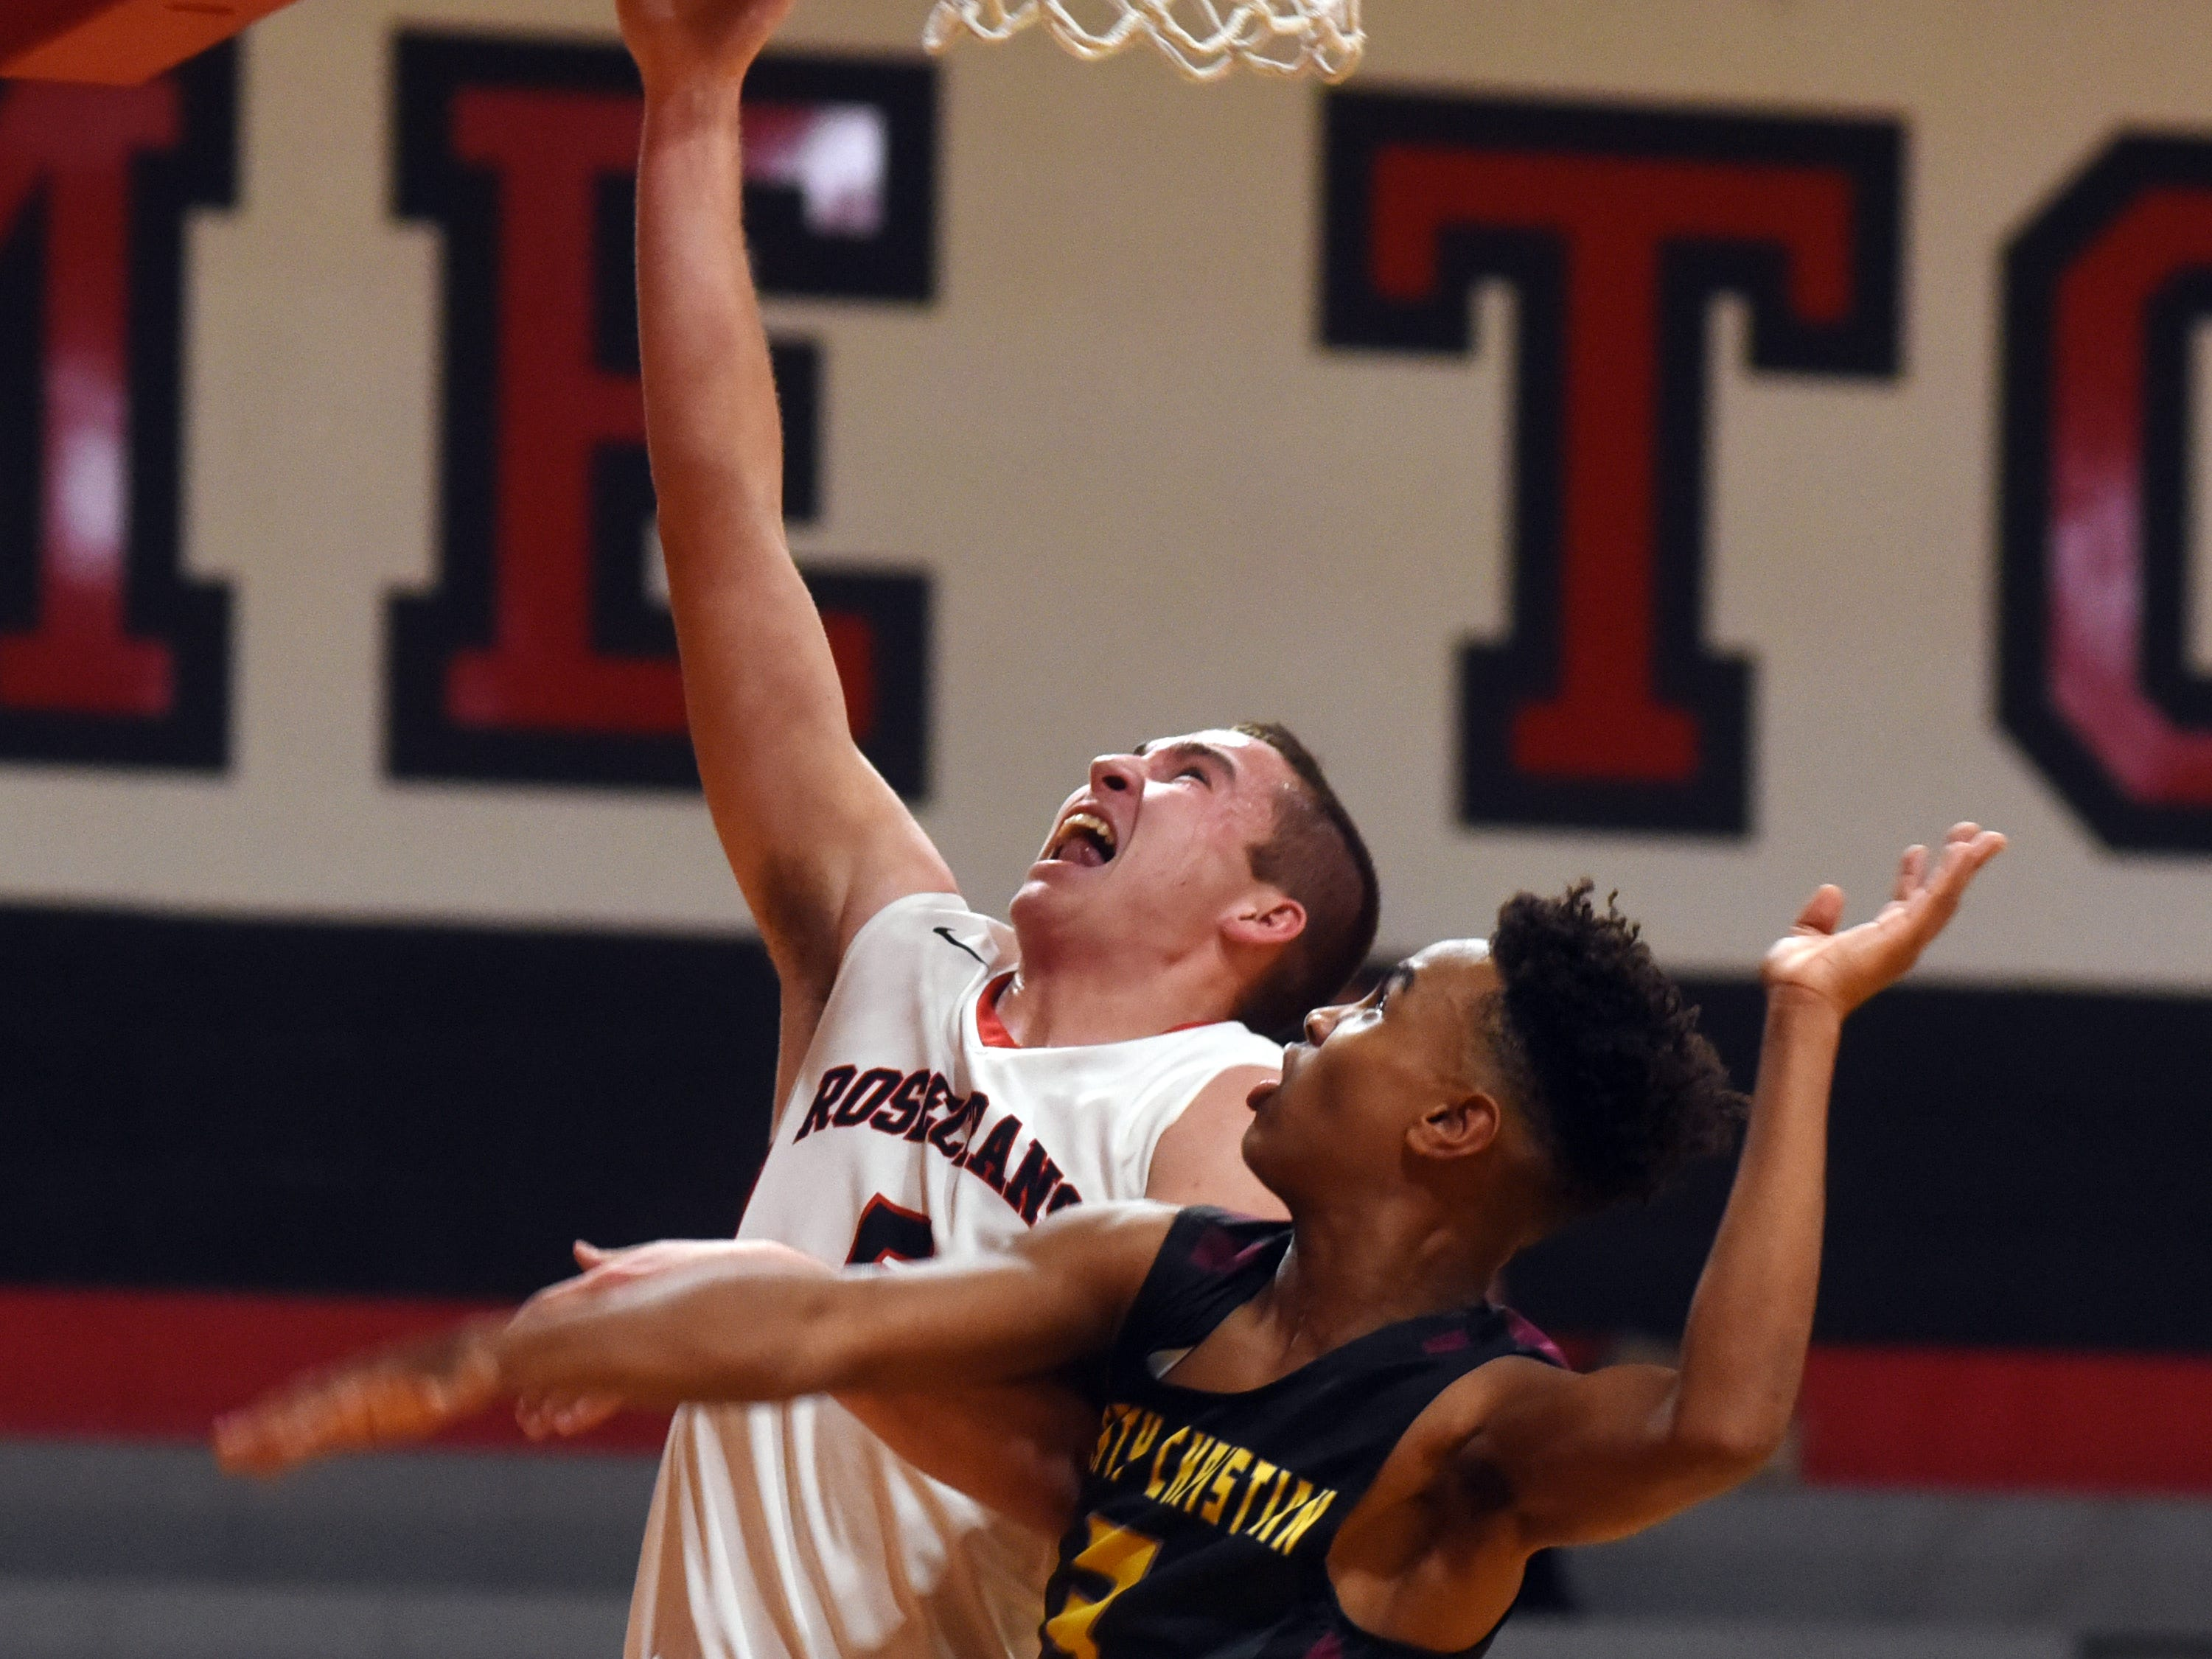 Rosecrans' Marcus Browning goes up for a layup in the second quarter against Liberty Christian on Monday night at Rogge Gymnasium.